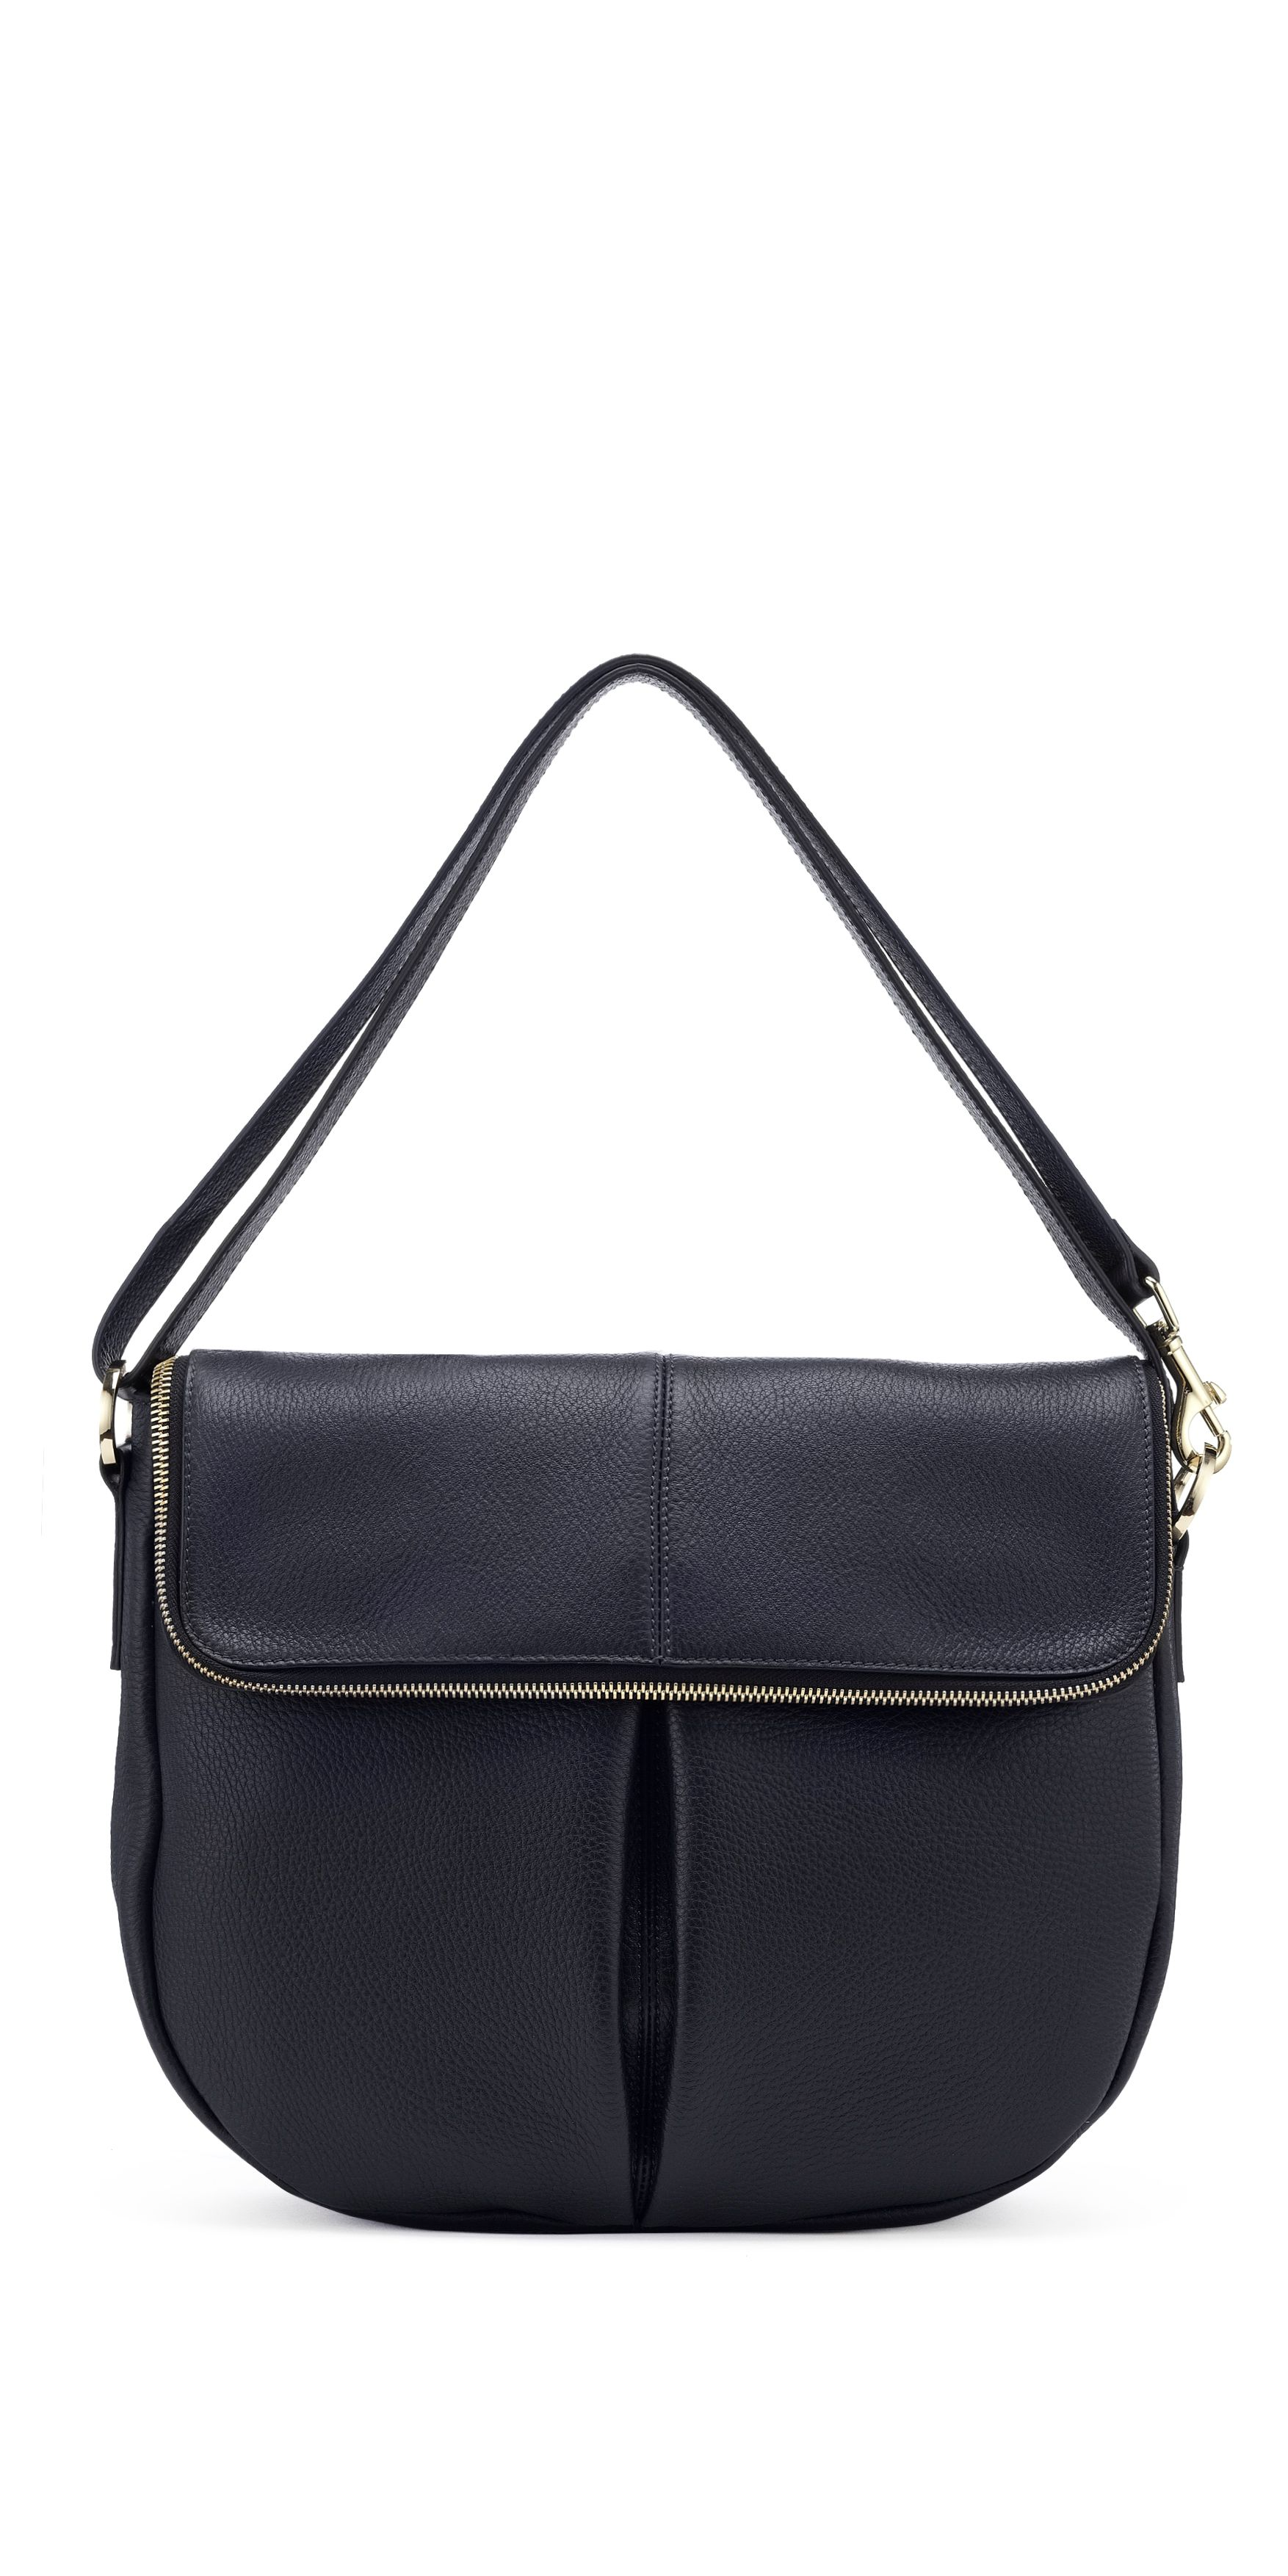 Duffy zip satchel